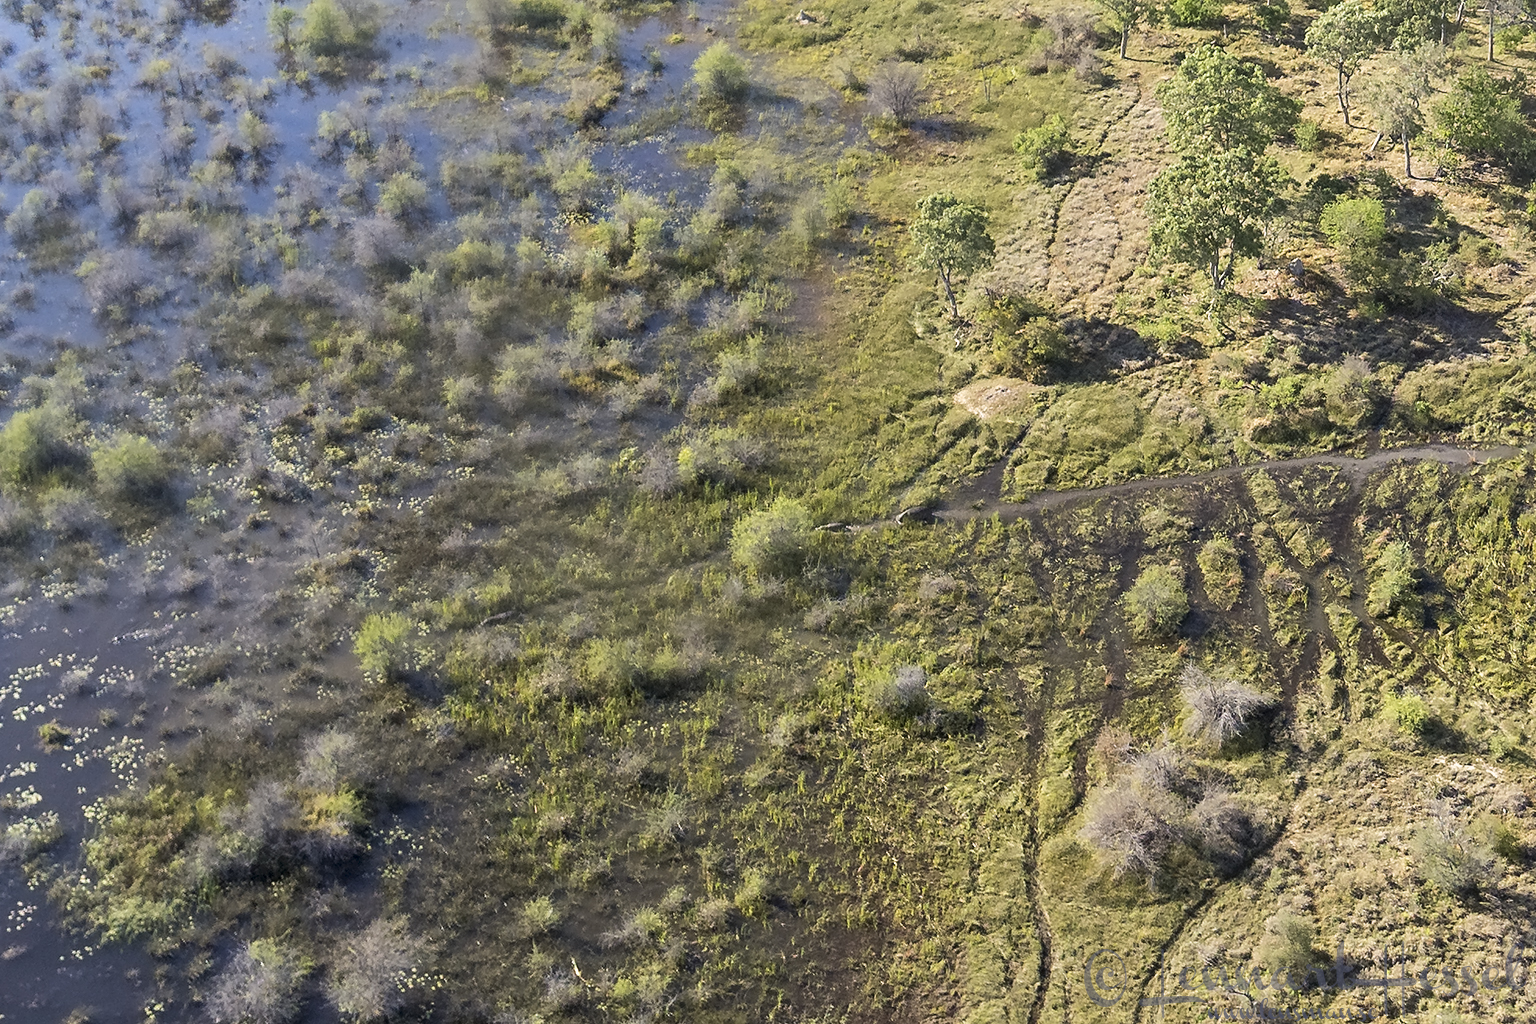 Hippo channel in the Okavango Delta, Botswana